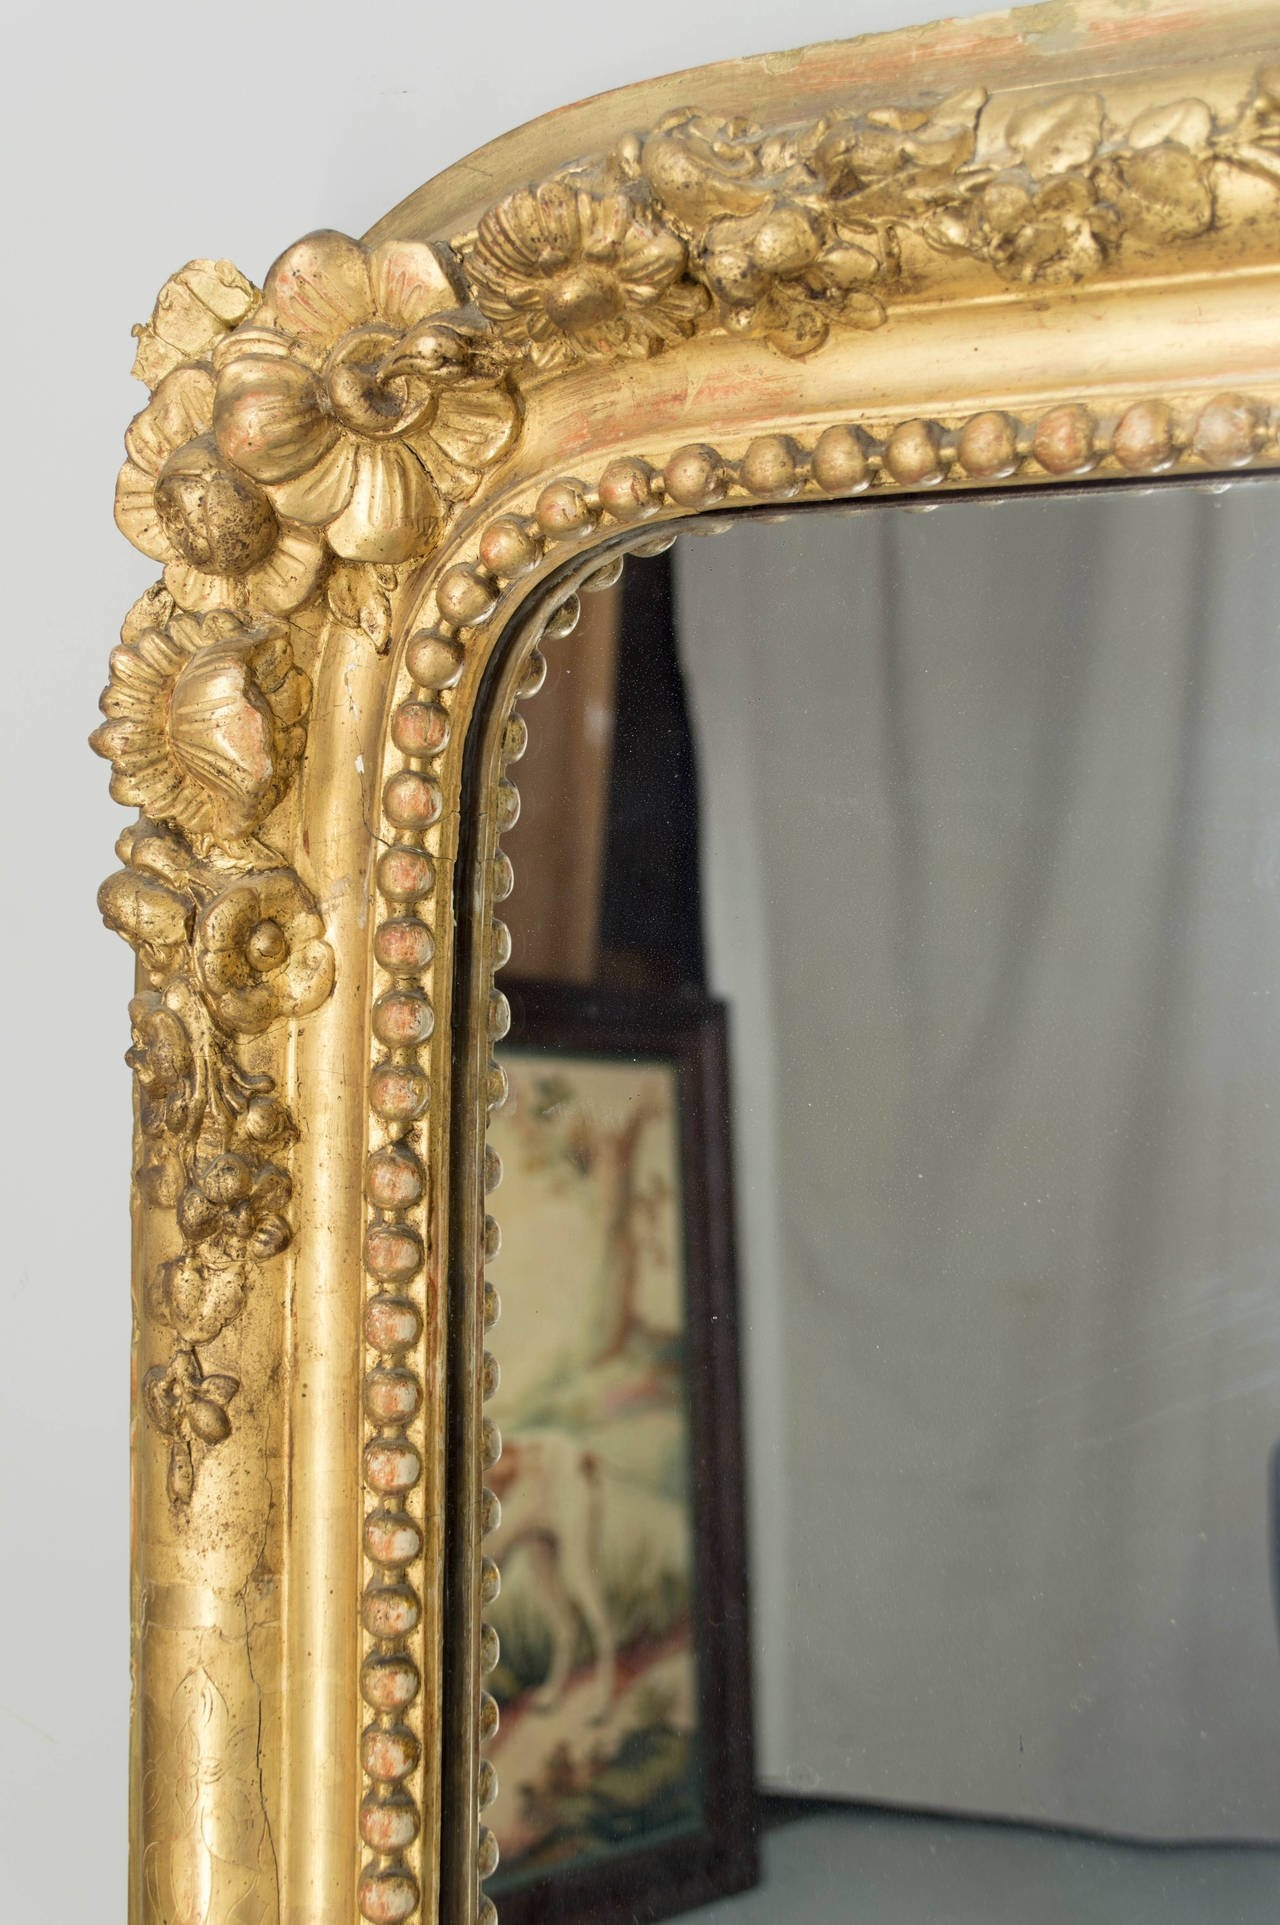 19th Century French Gilt Mirror For Sale At 1stdibs Regarding French Gilt Mirror (Image 1 of 15)